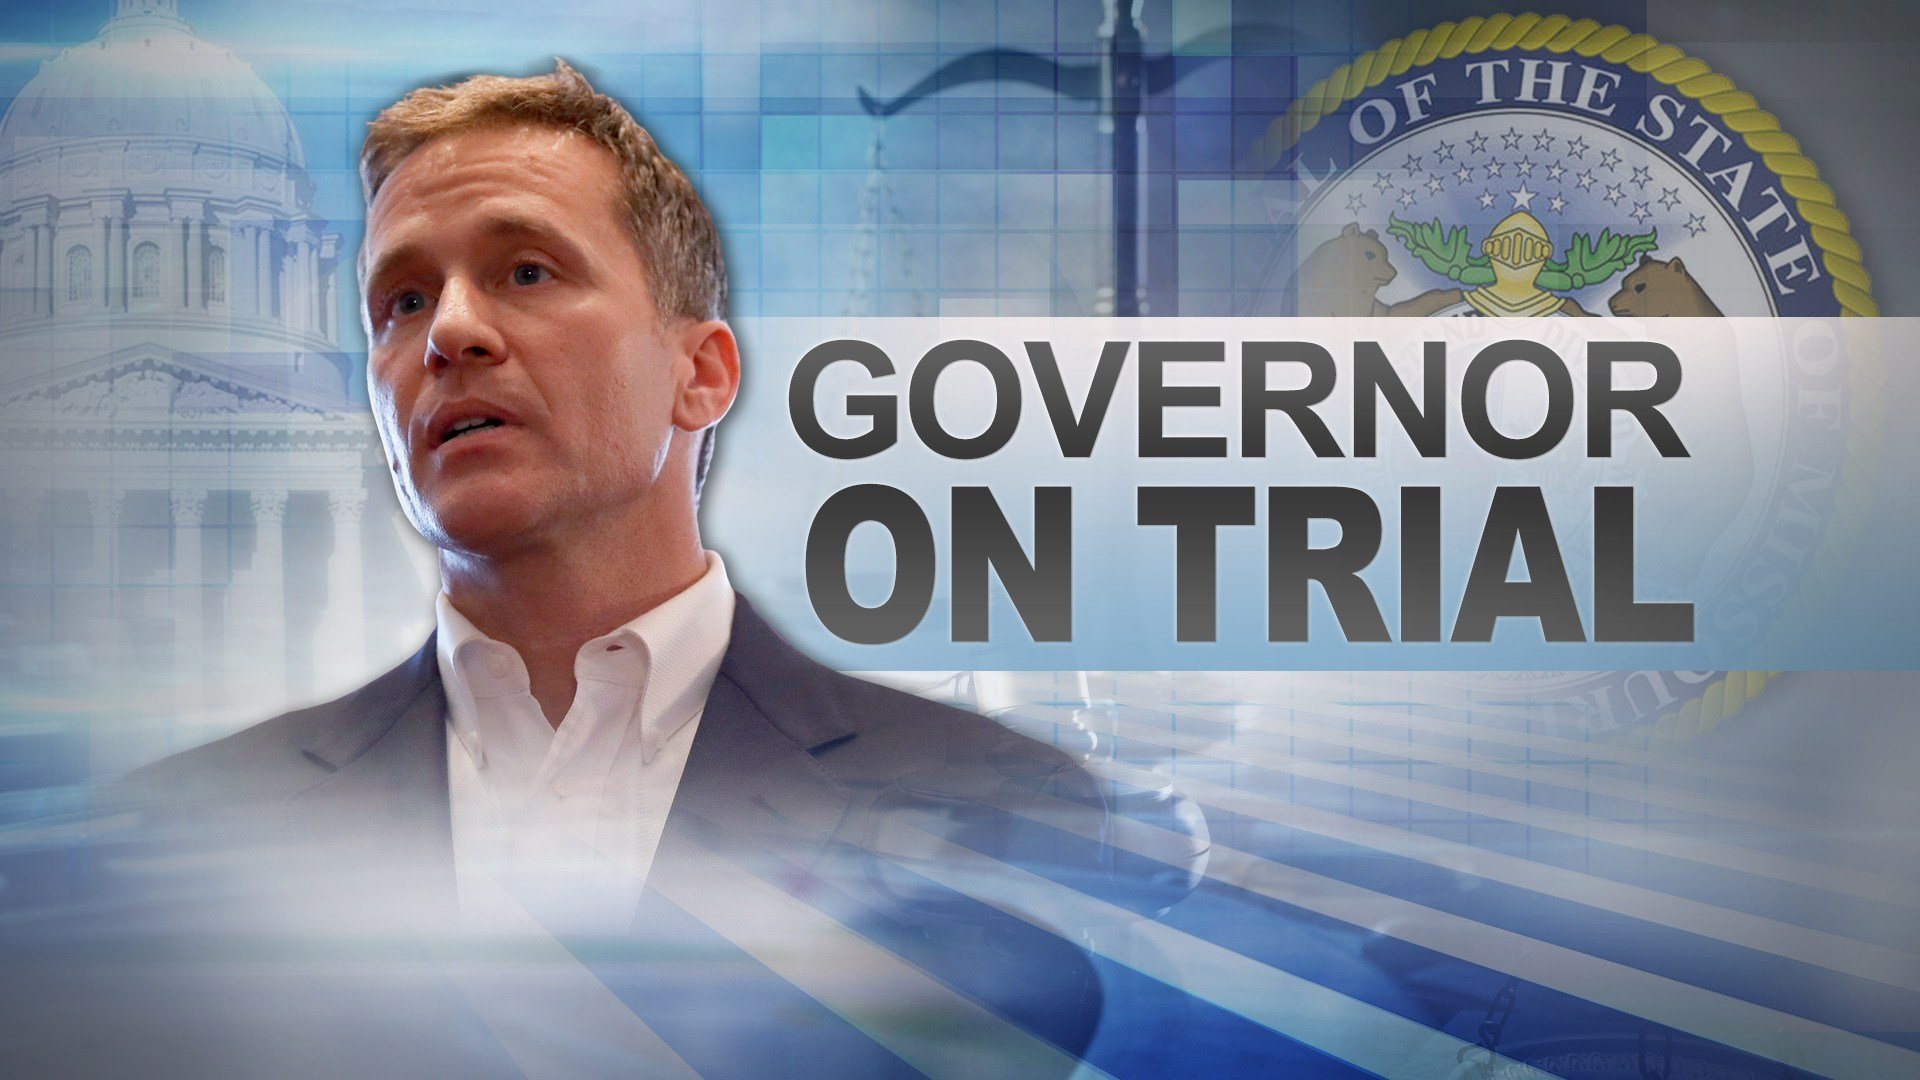 DAY 1: Jury selection begins in Gov. Greitens trial